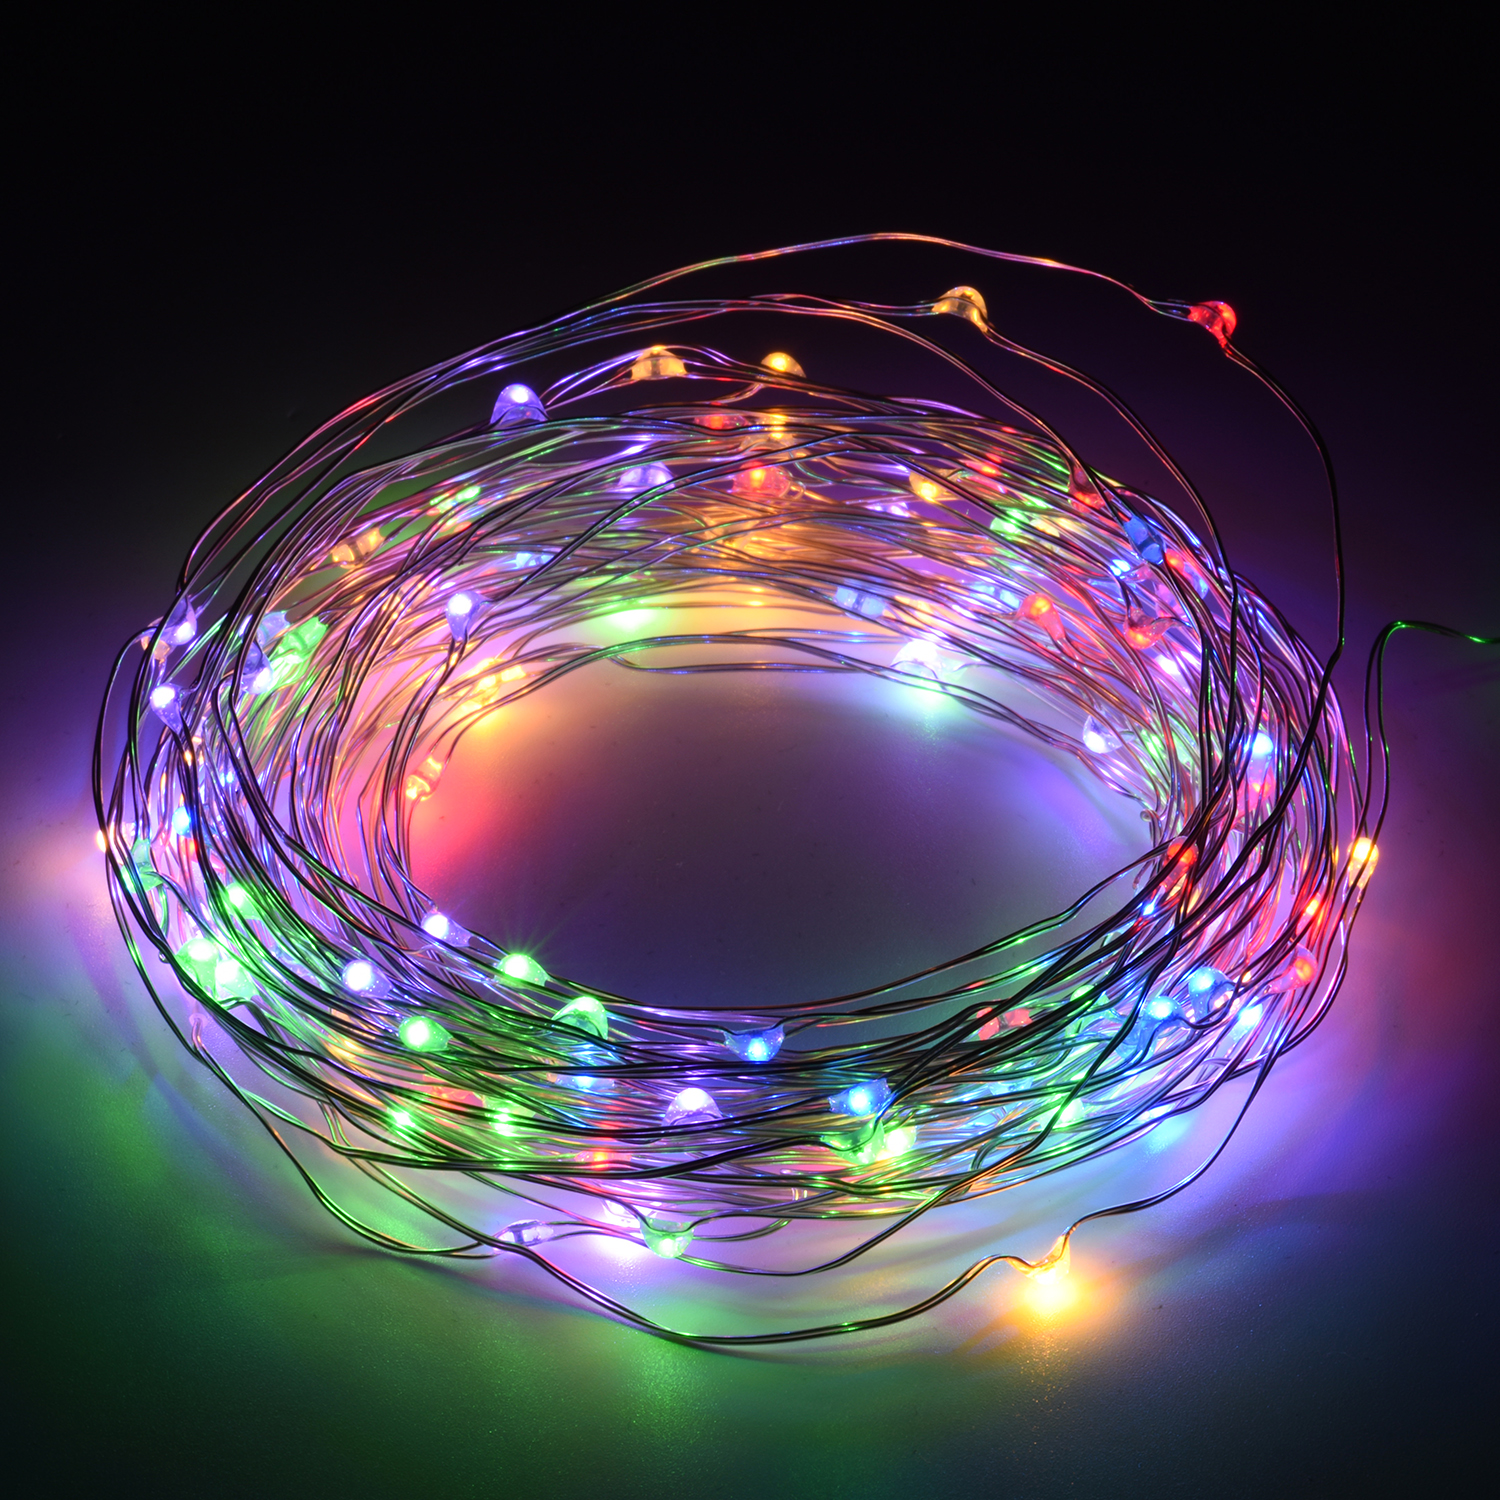 Oak Leaf 120 LEDs 39.2ft Copper Wire Waterproof Rope Lights LED Starry String Lights for Garden Home Patio with UL Certified 3.5v Power Adapter